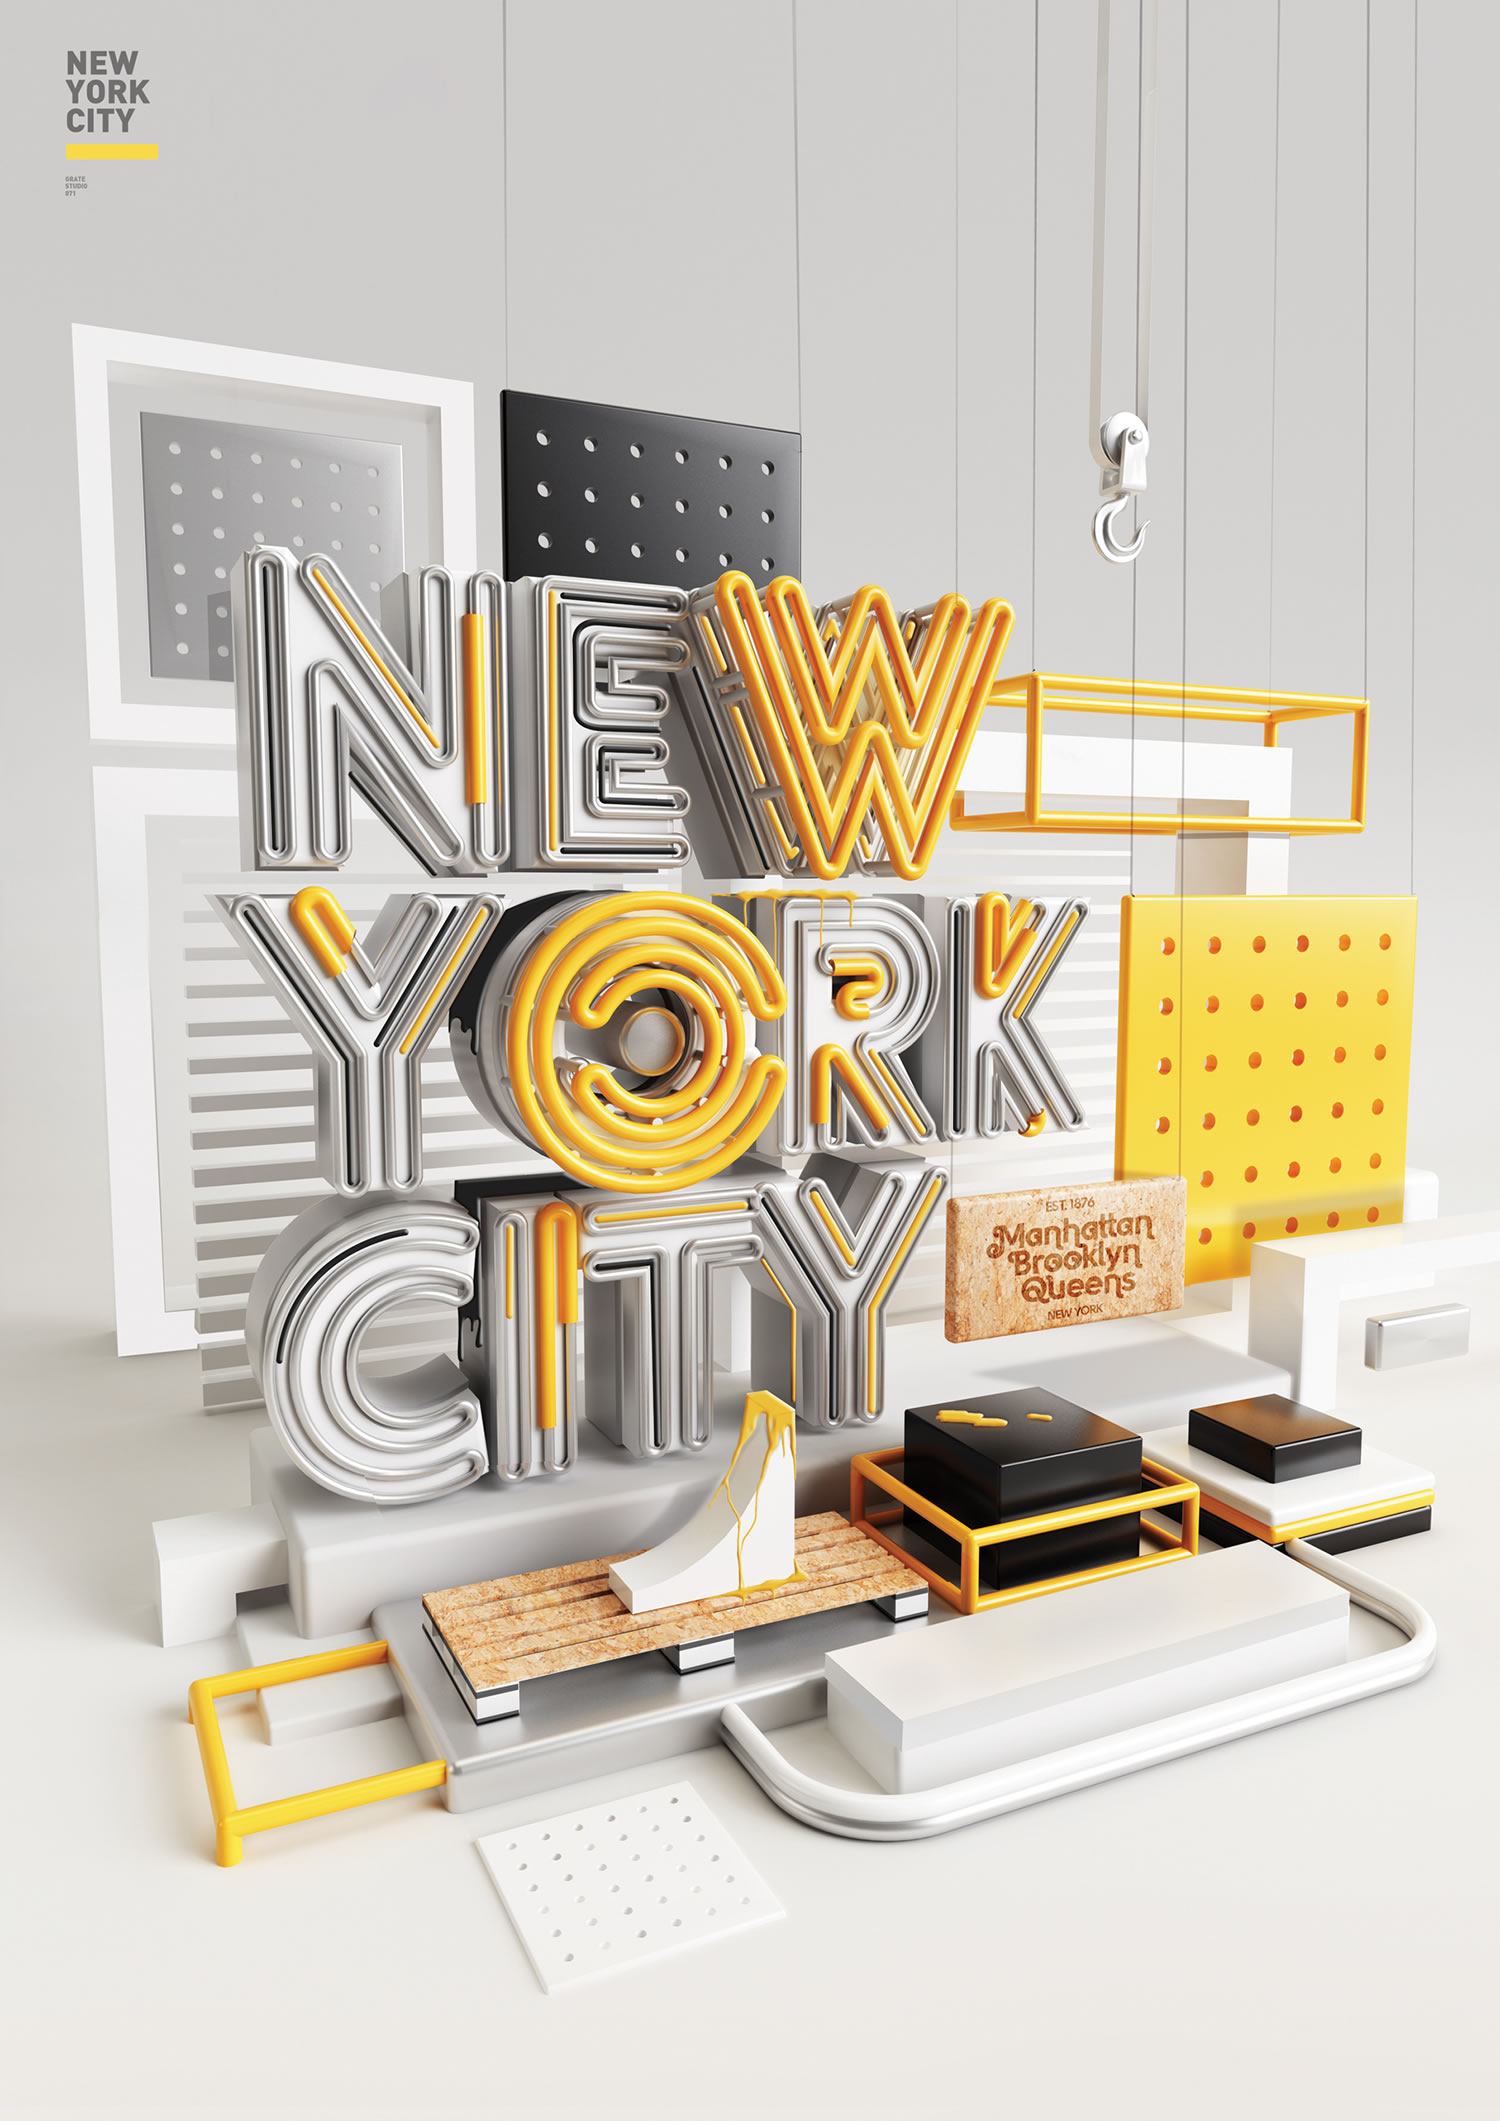 new york city lettering in 3d, neon yellow lights by peter tarka